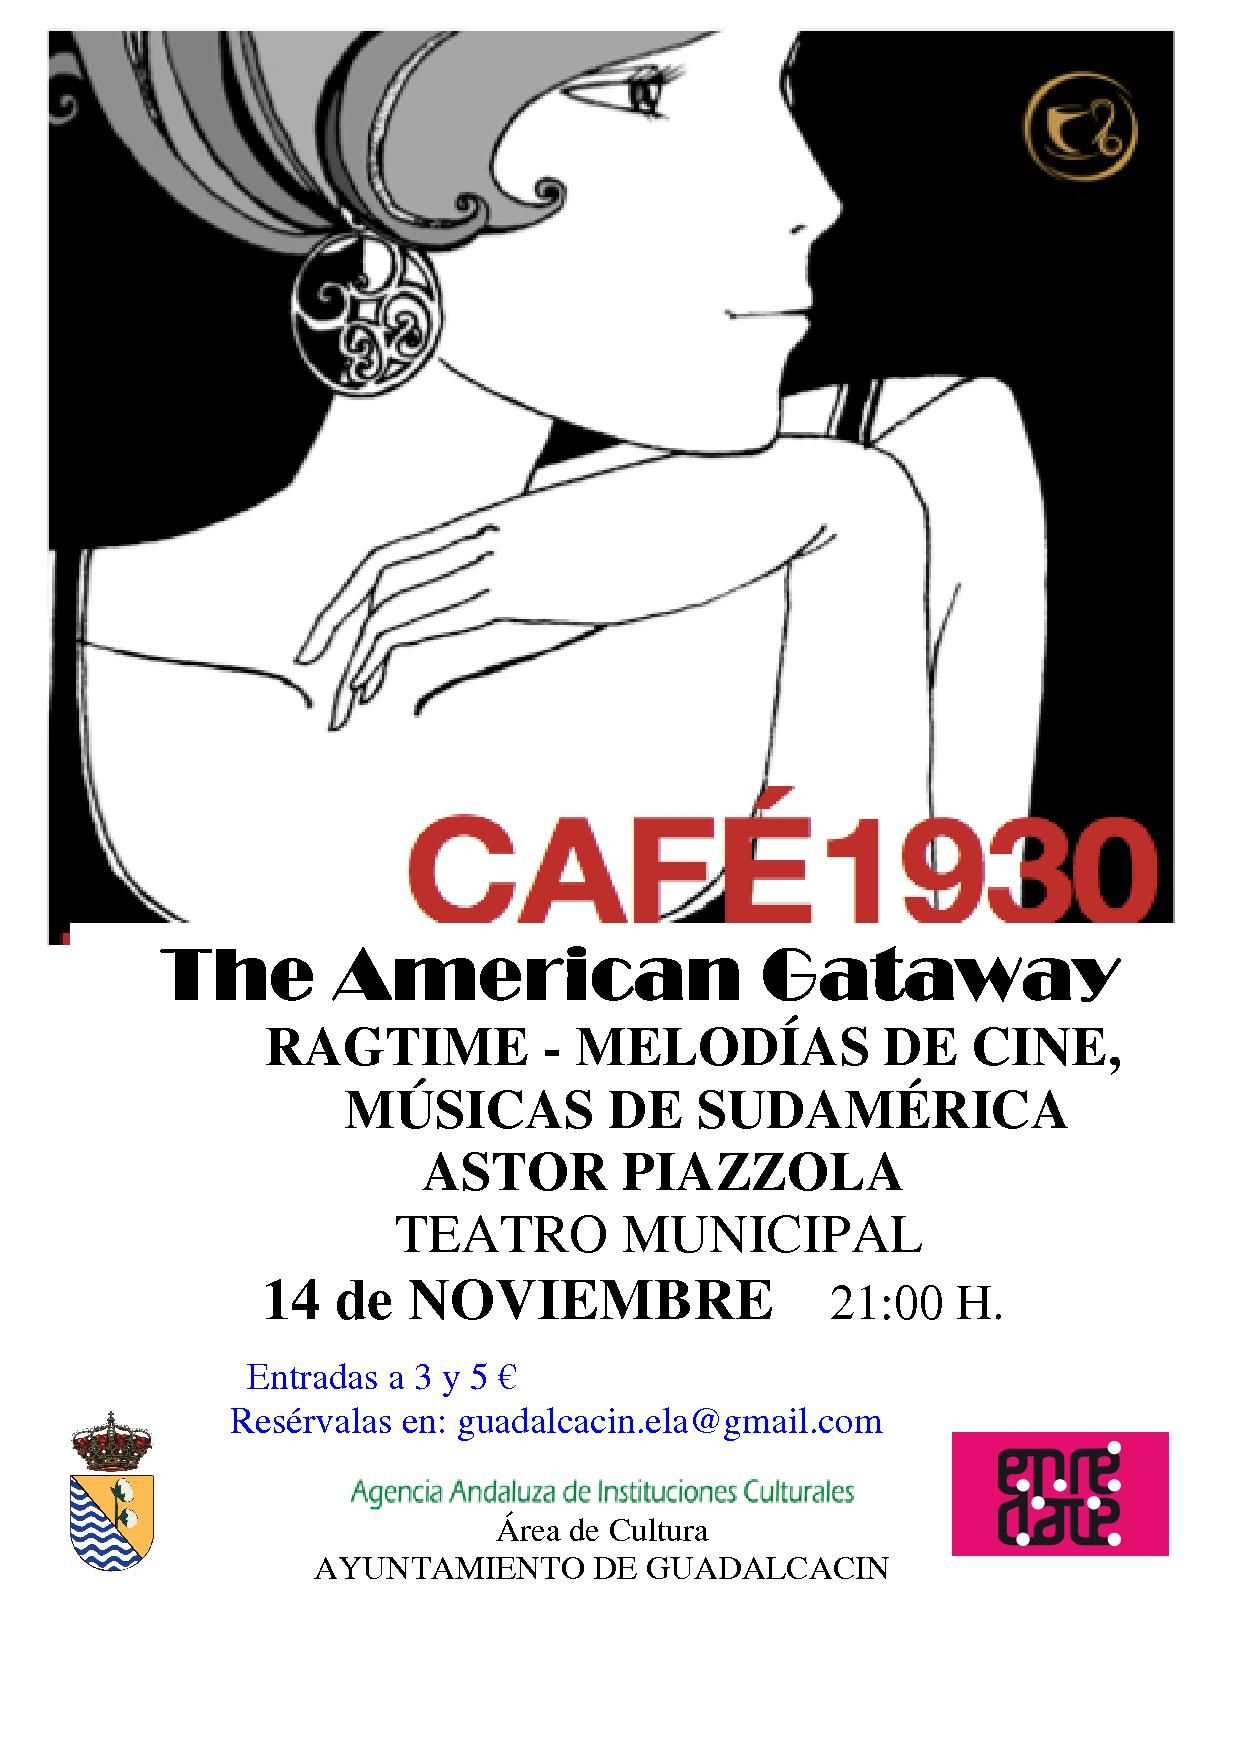 CAFE 1930 cartel